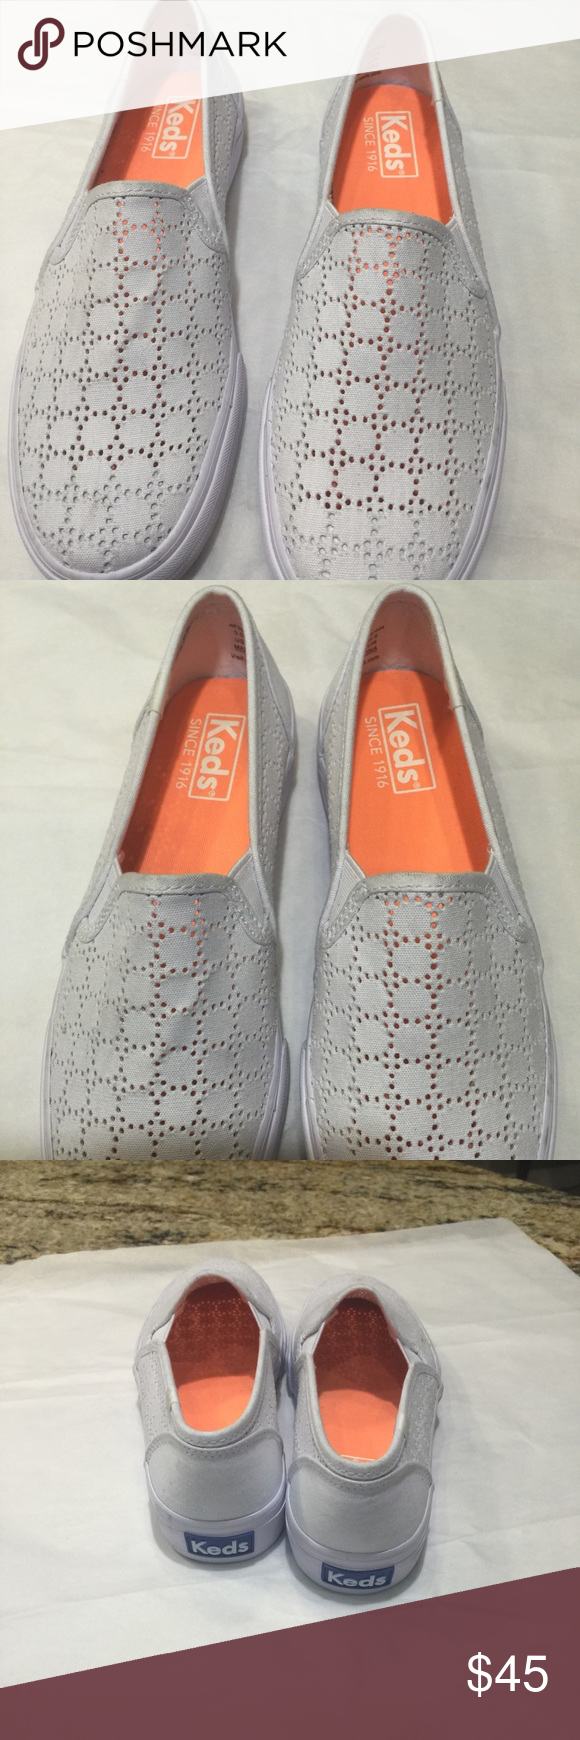 Keds slip on for woman Keds slip on sneaker double decker for woman brand new with out tag and box Keds Shoes Sneakers